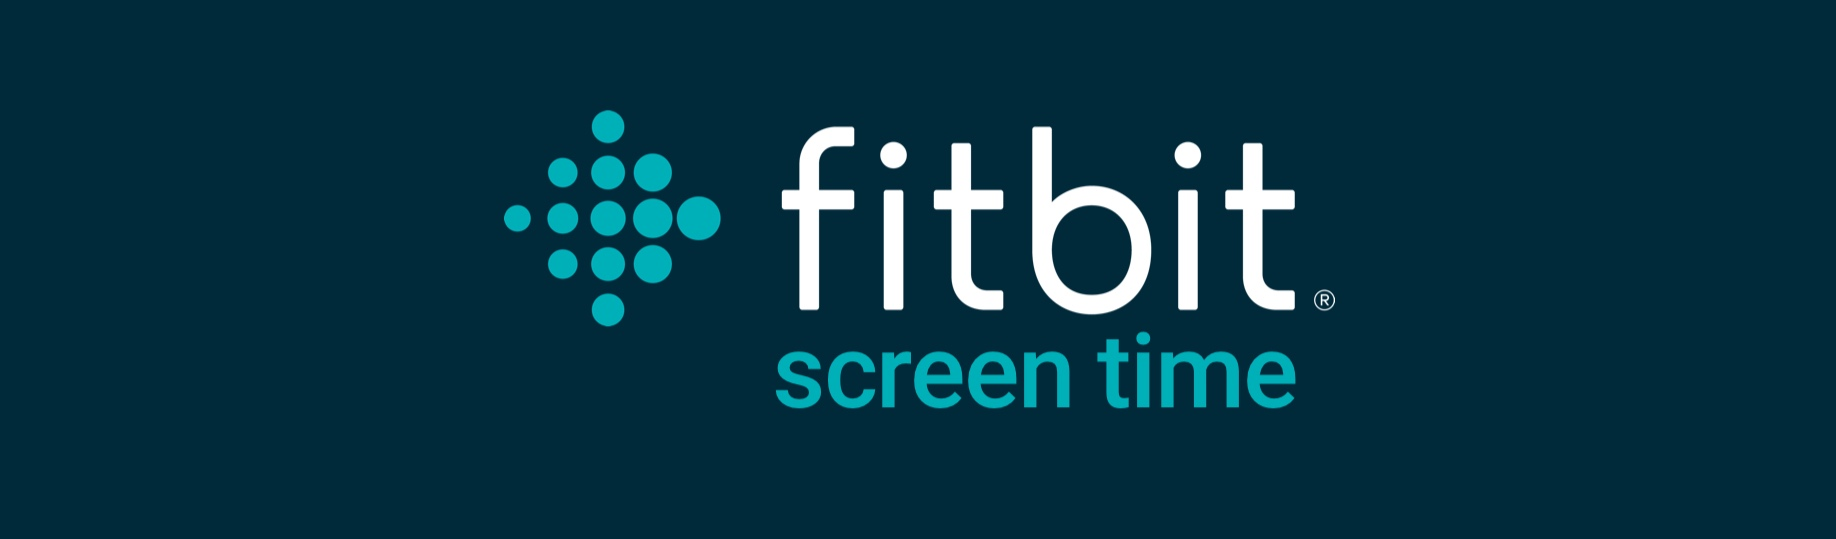 Fitbit+Cover+image.jpg